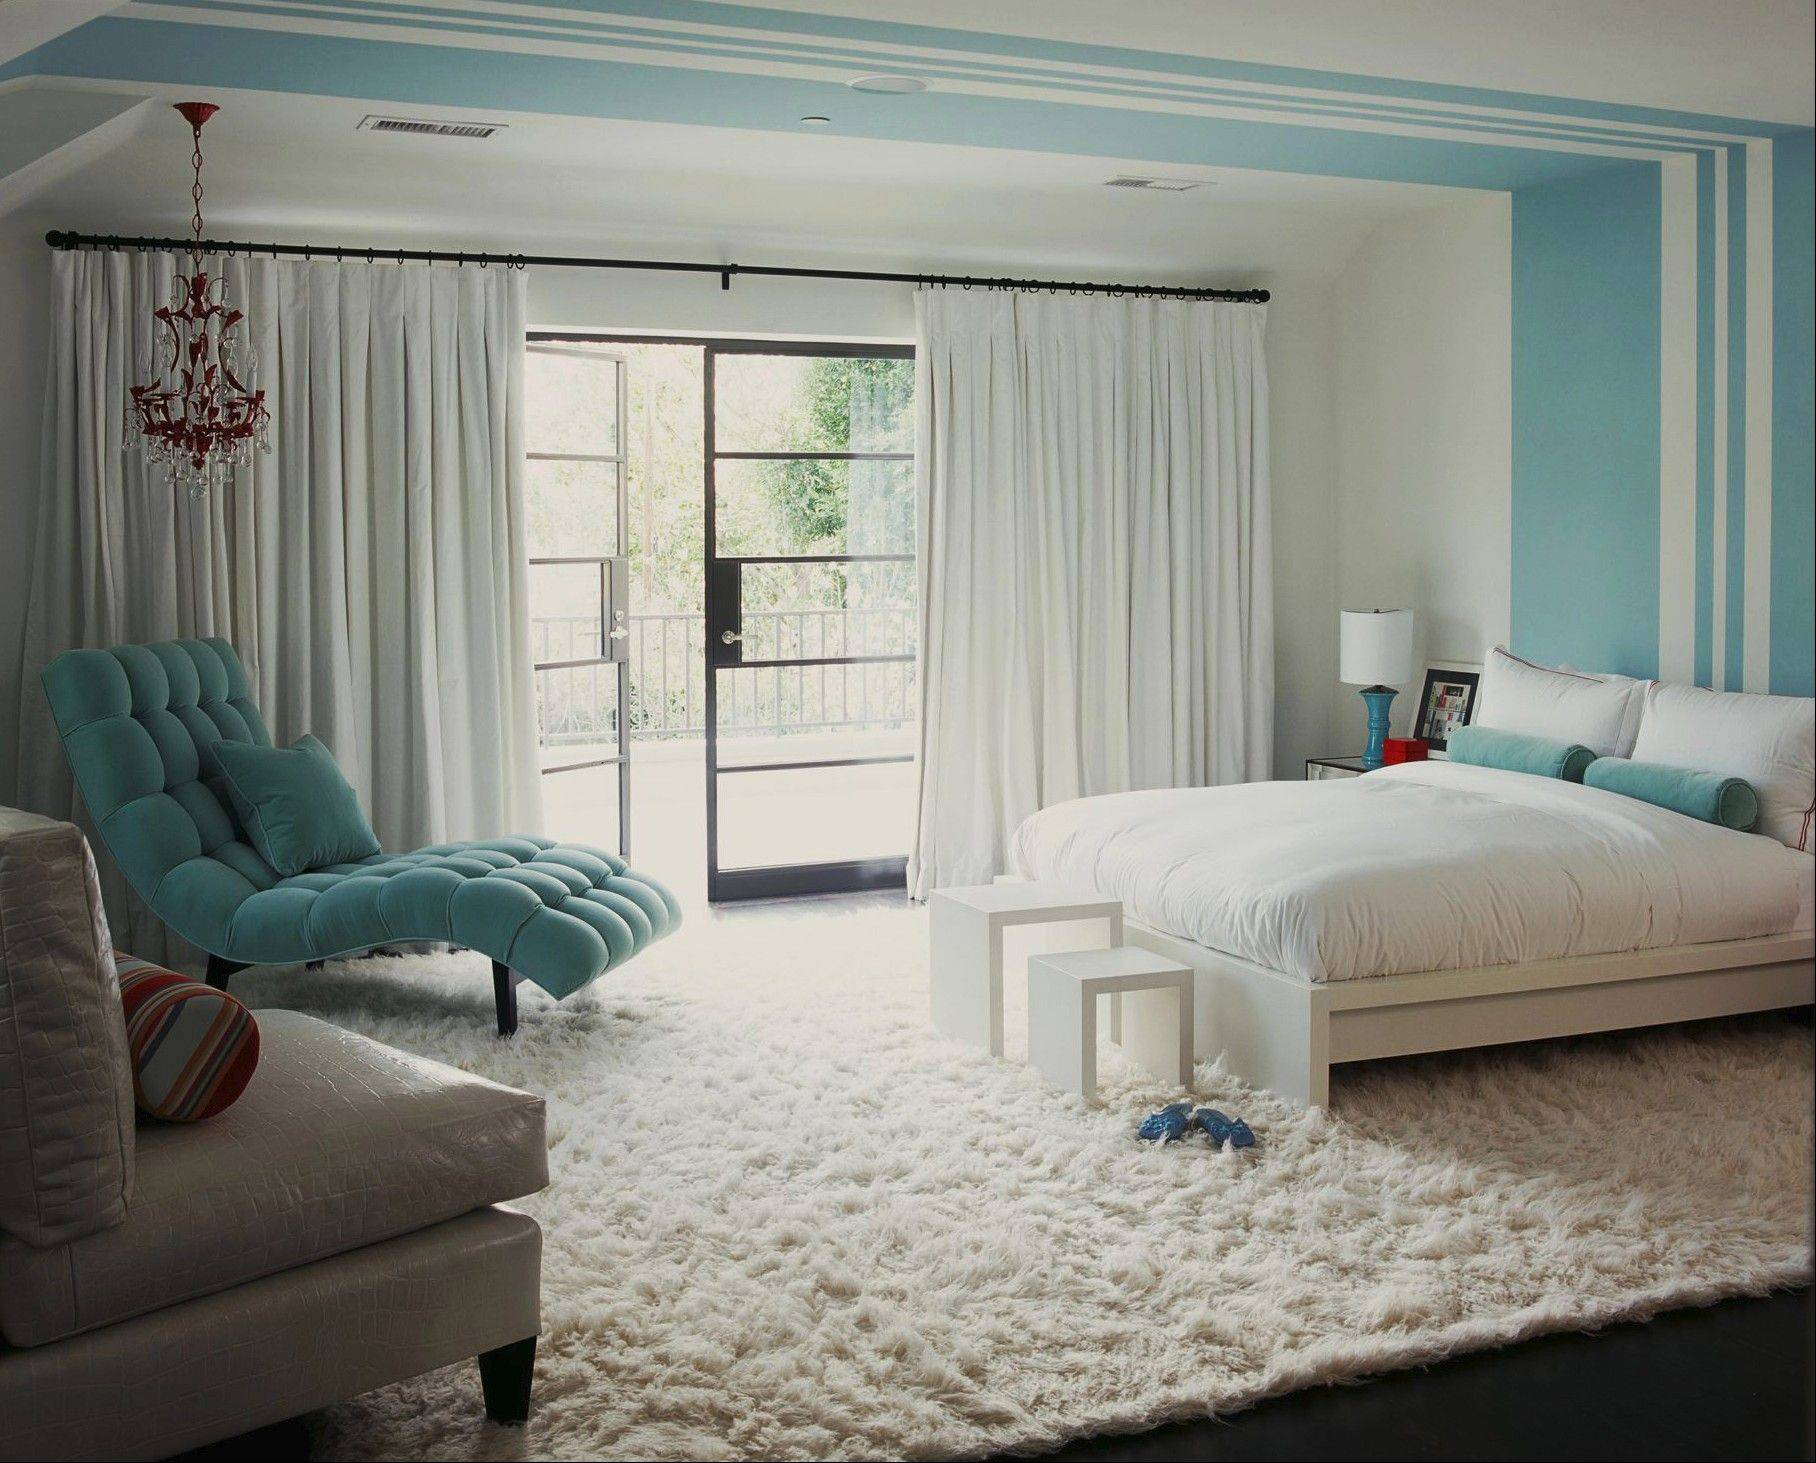 Designer Betsy Burnham chose walls of pure white and frosty blue to complement the fluffy snow-white flokati rug.